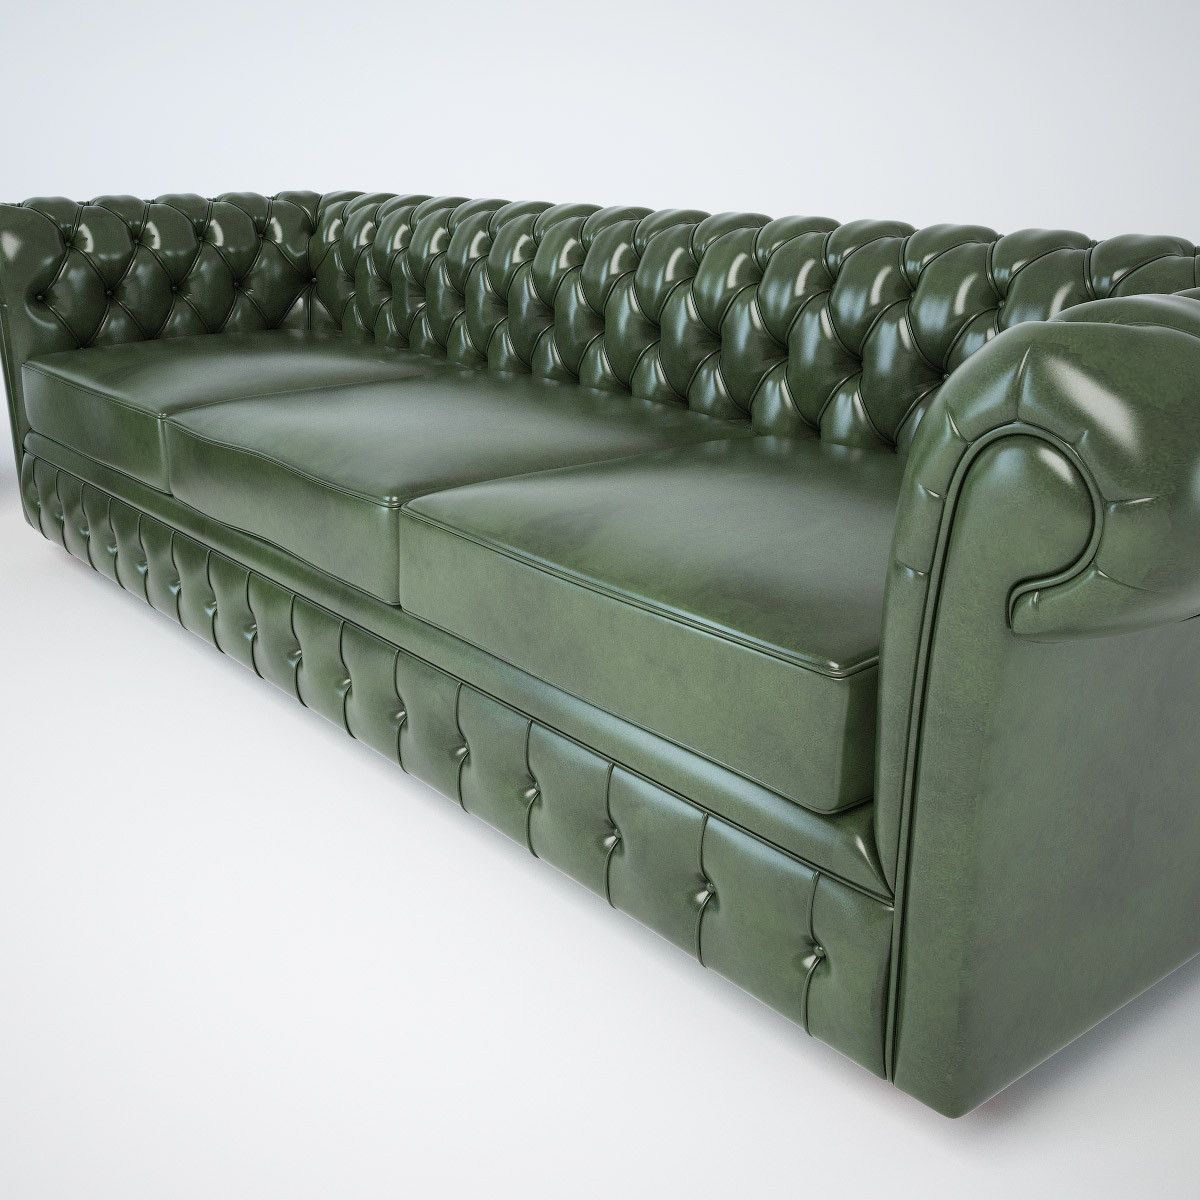 Chesterfield Sofa And Chair 3d Classic Chesterfield Sofas Chair Model 3d Model Sofa Settee